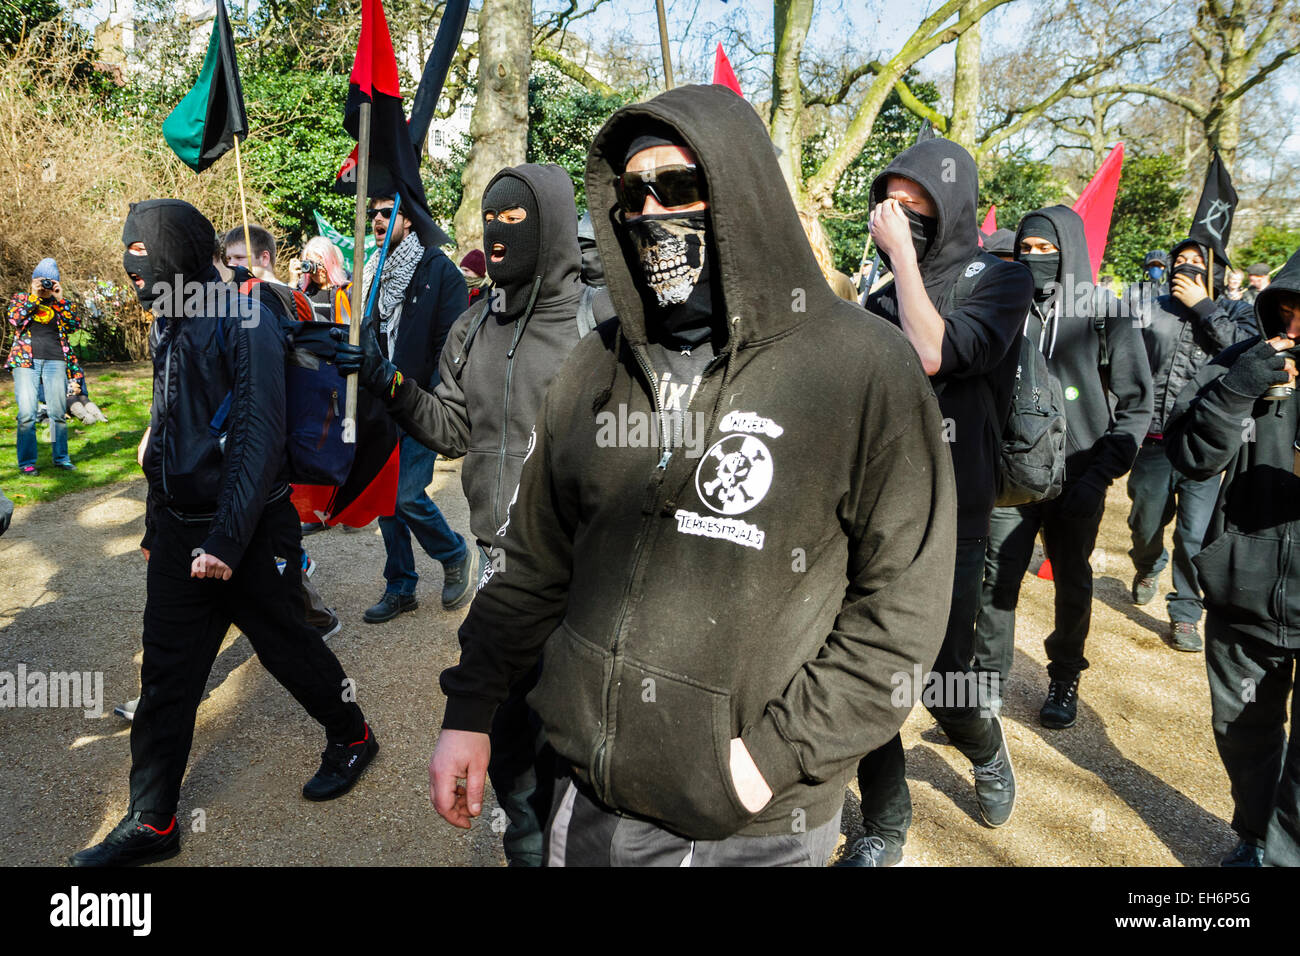 London, UK. 7th March, 2015  'Time for Action' climate change march.  Pictured: Anti-capitalist demonstrators - Stock Image